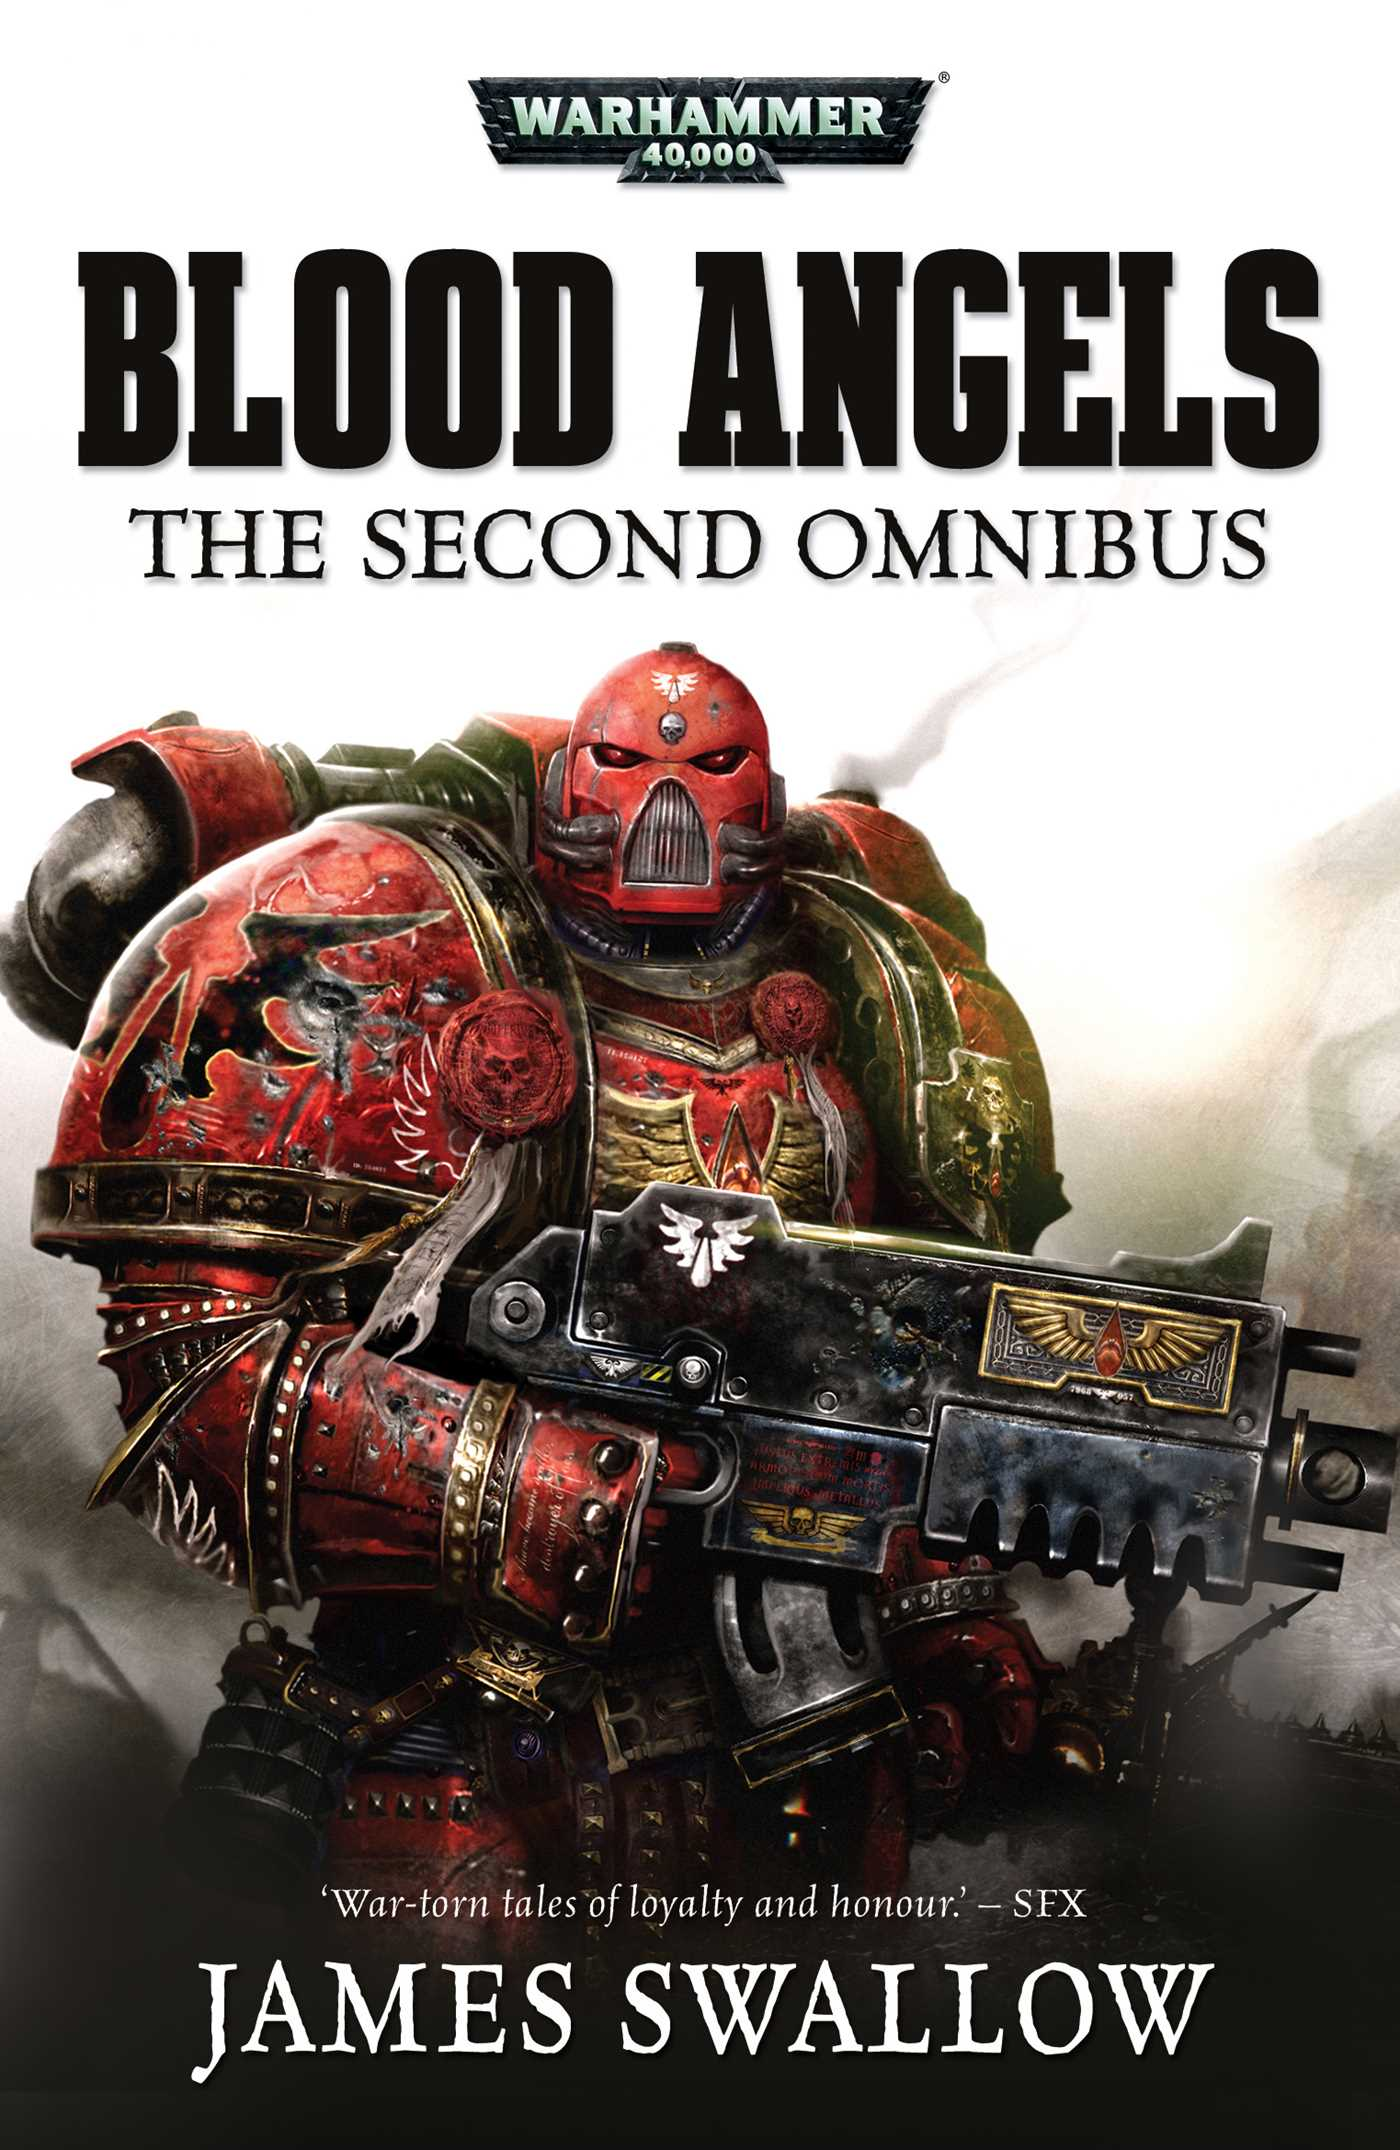 Blood-angels-the-second-omnibus-9781785721106_hr